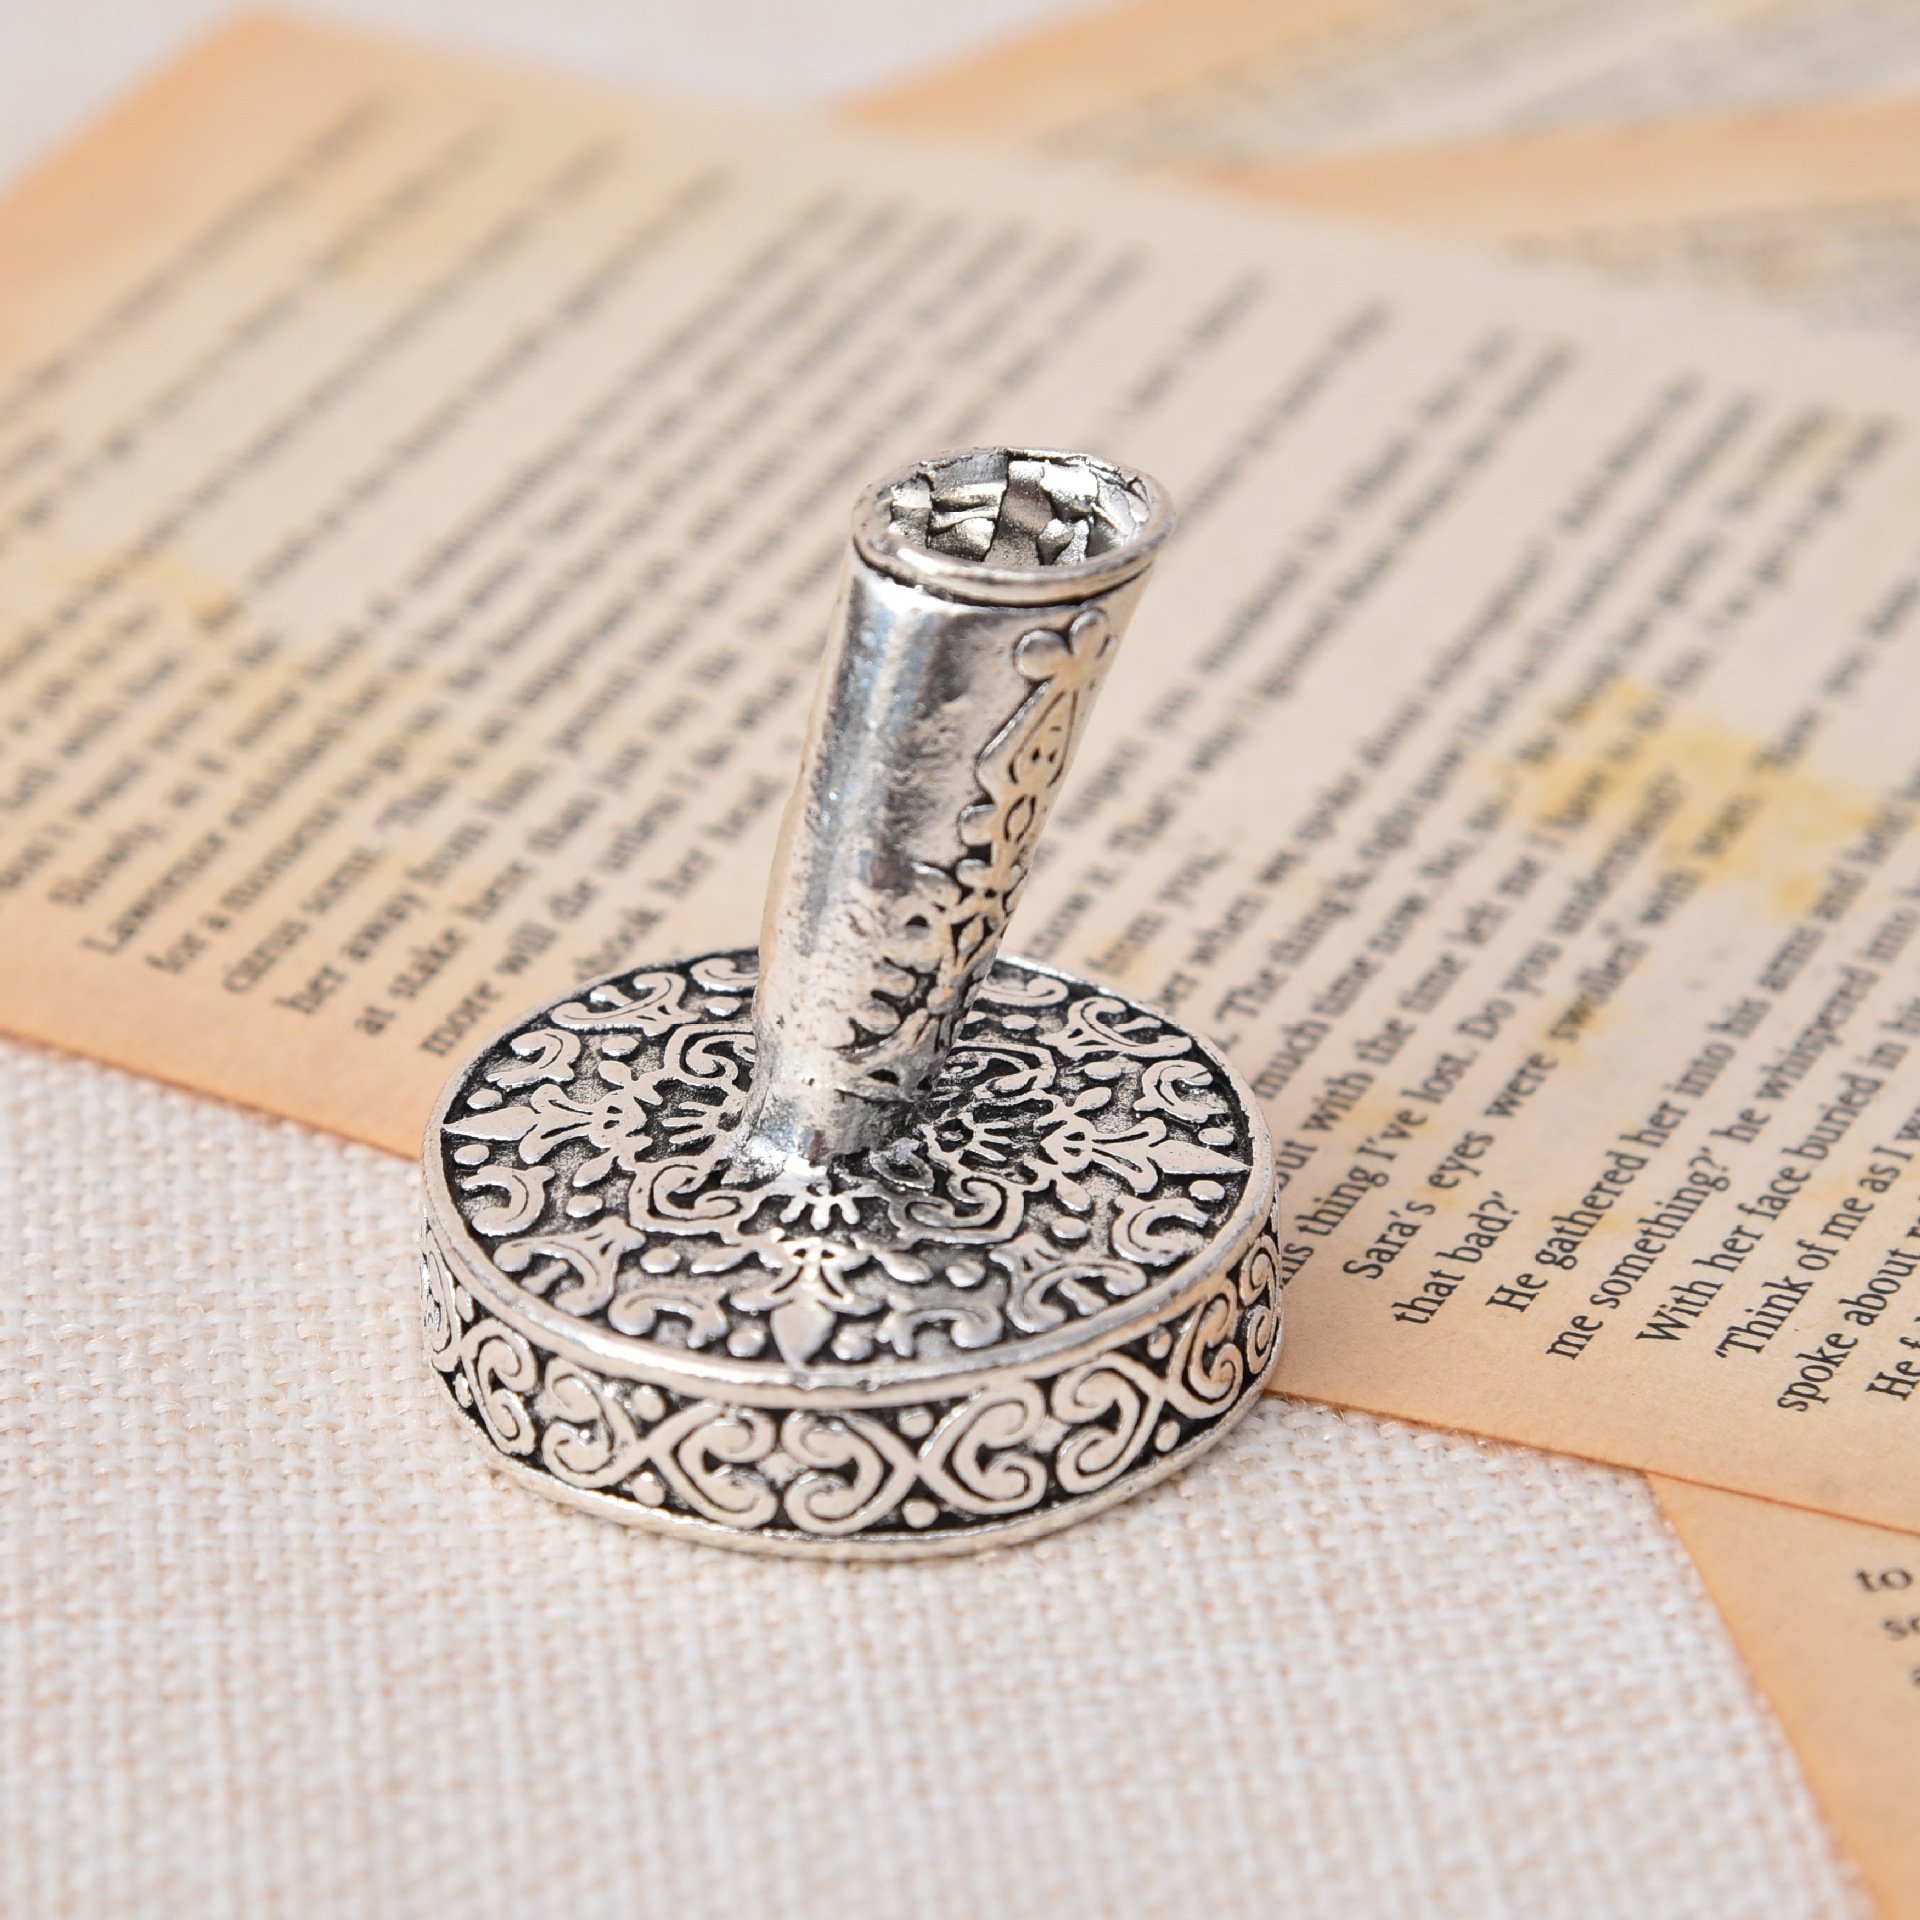 Vintage European Feather Pen Stand Antique Silver Color Metal Round Pen Holder Office School Pen Accessories Stationery Gift